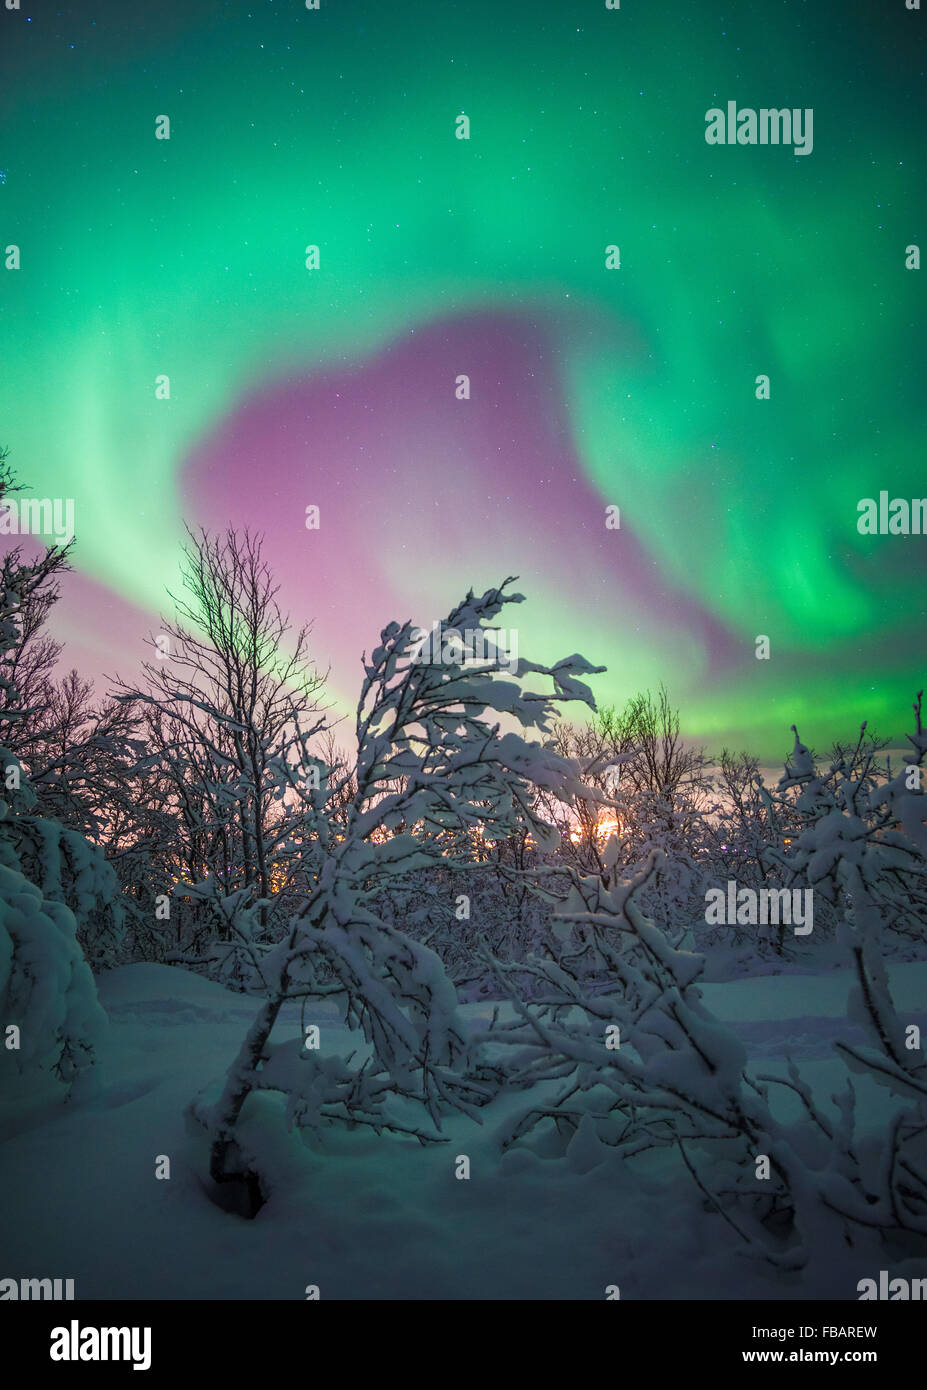 Aurora Borealis over Tromso, Northern Norway - Stock Image